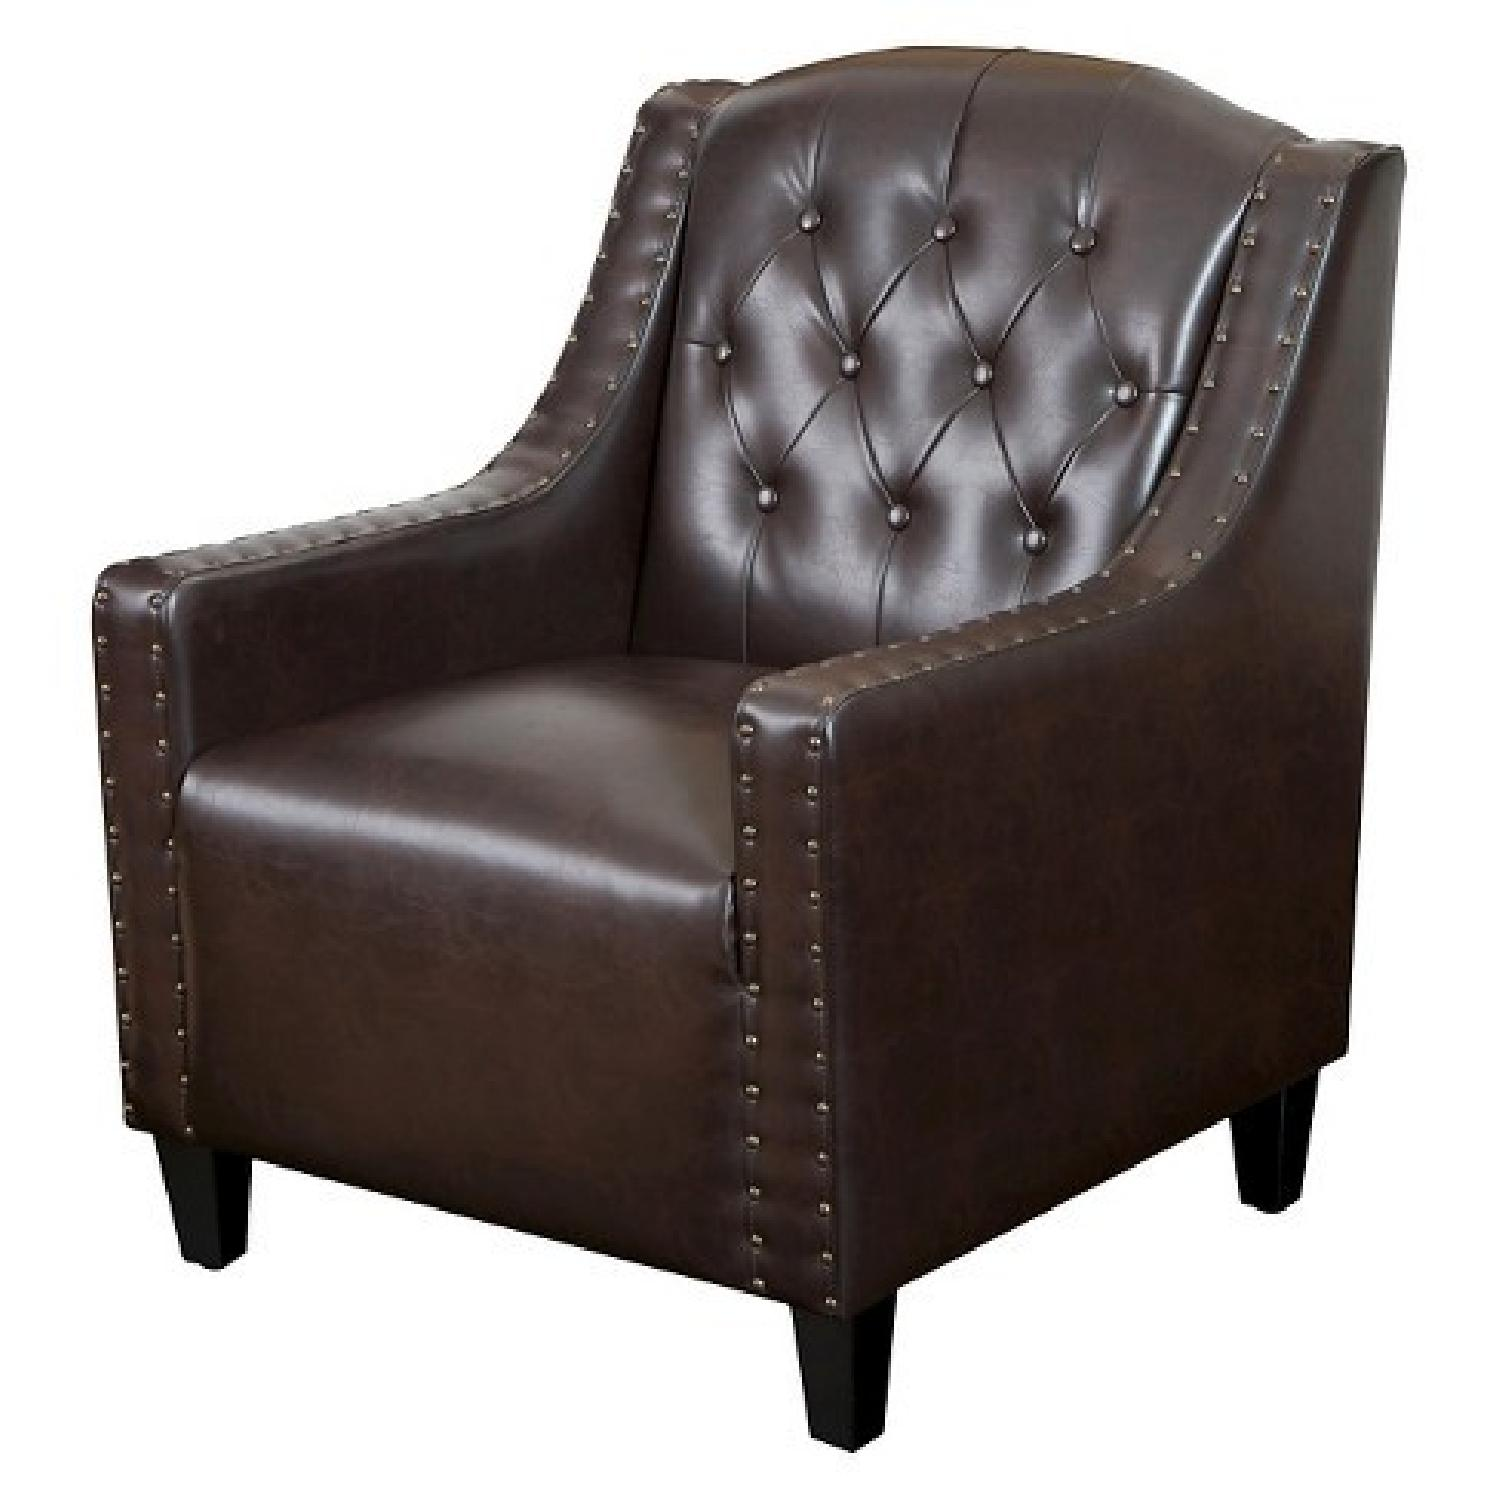 Target Bonded Leather Tufted Club Chair